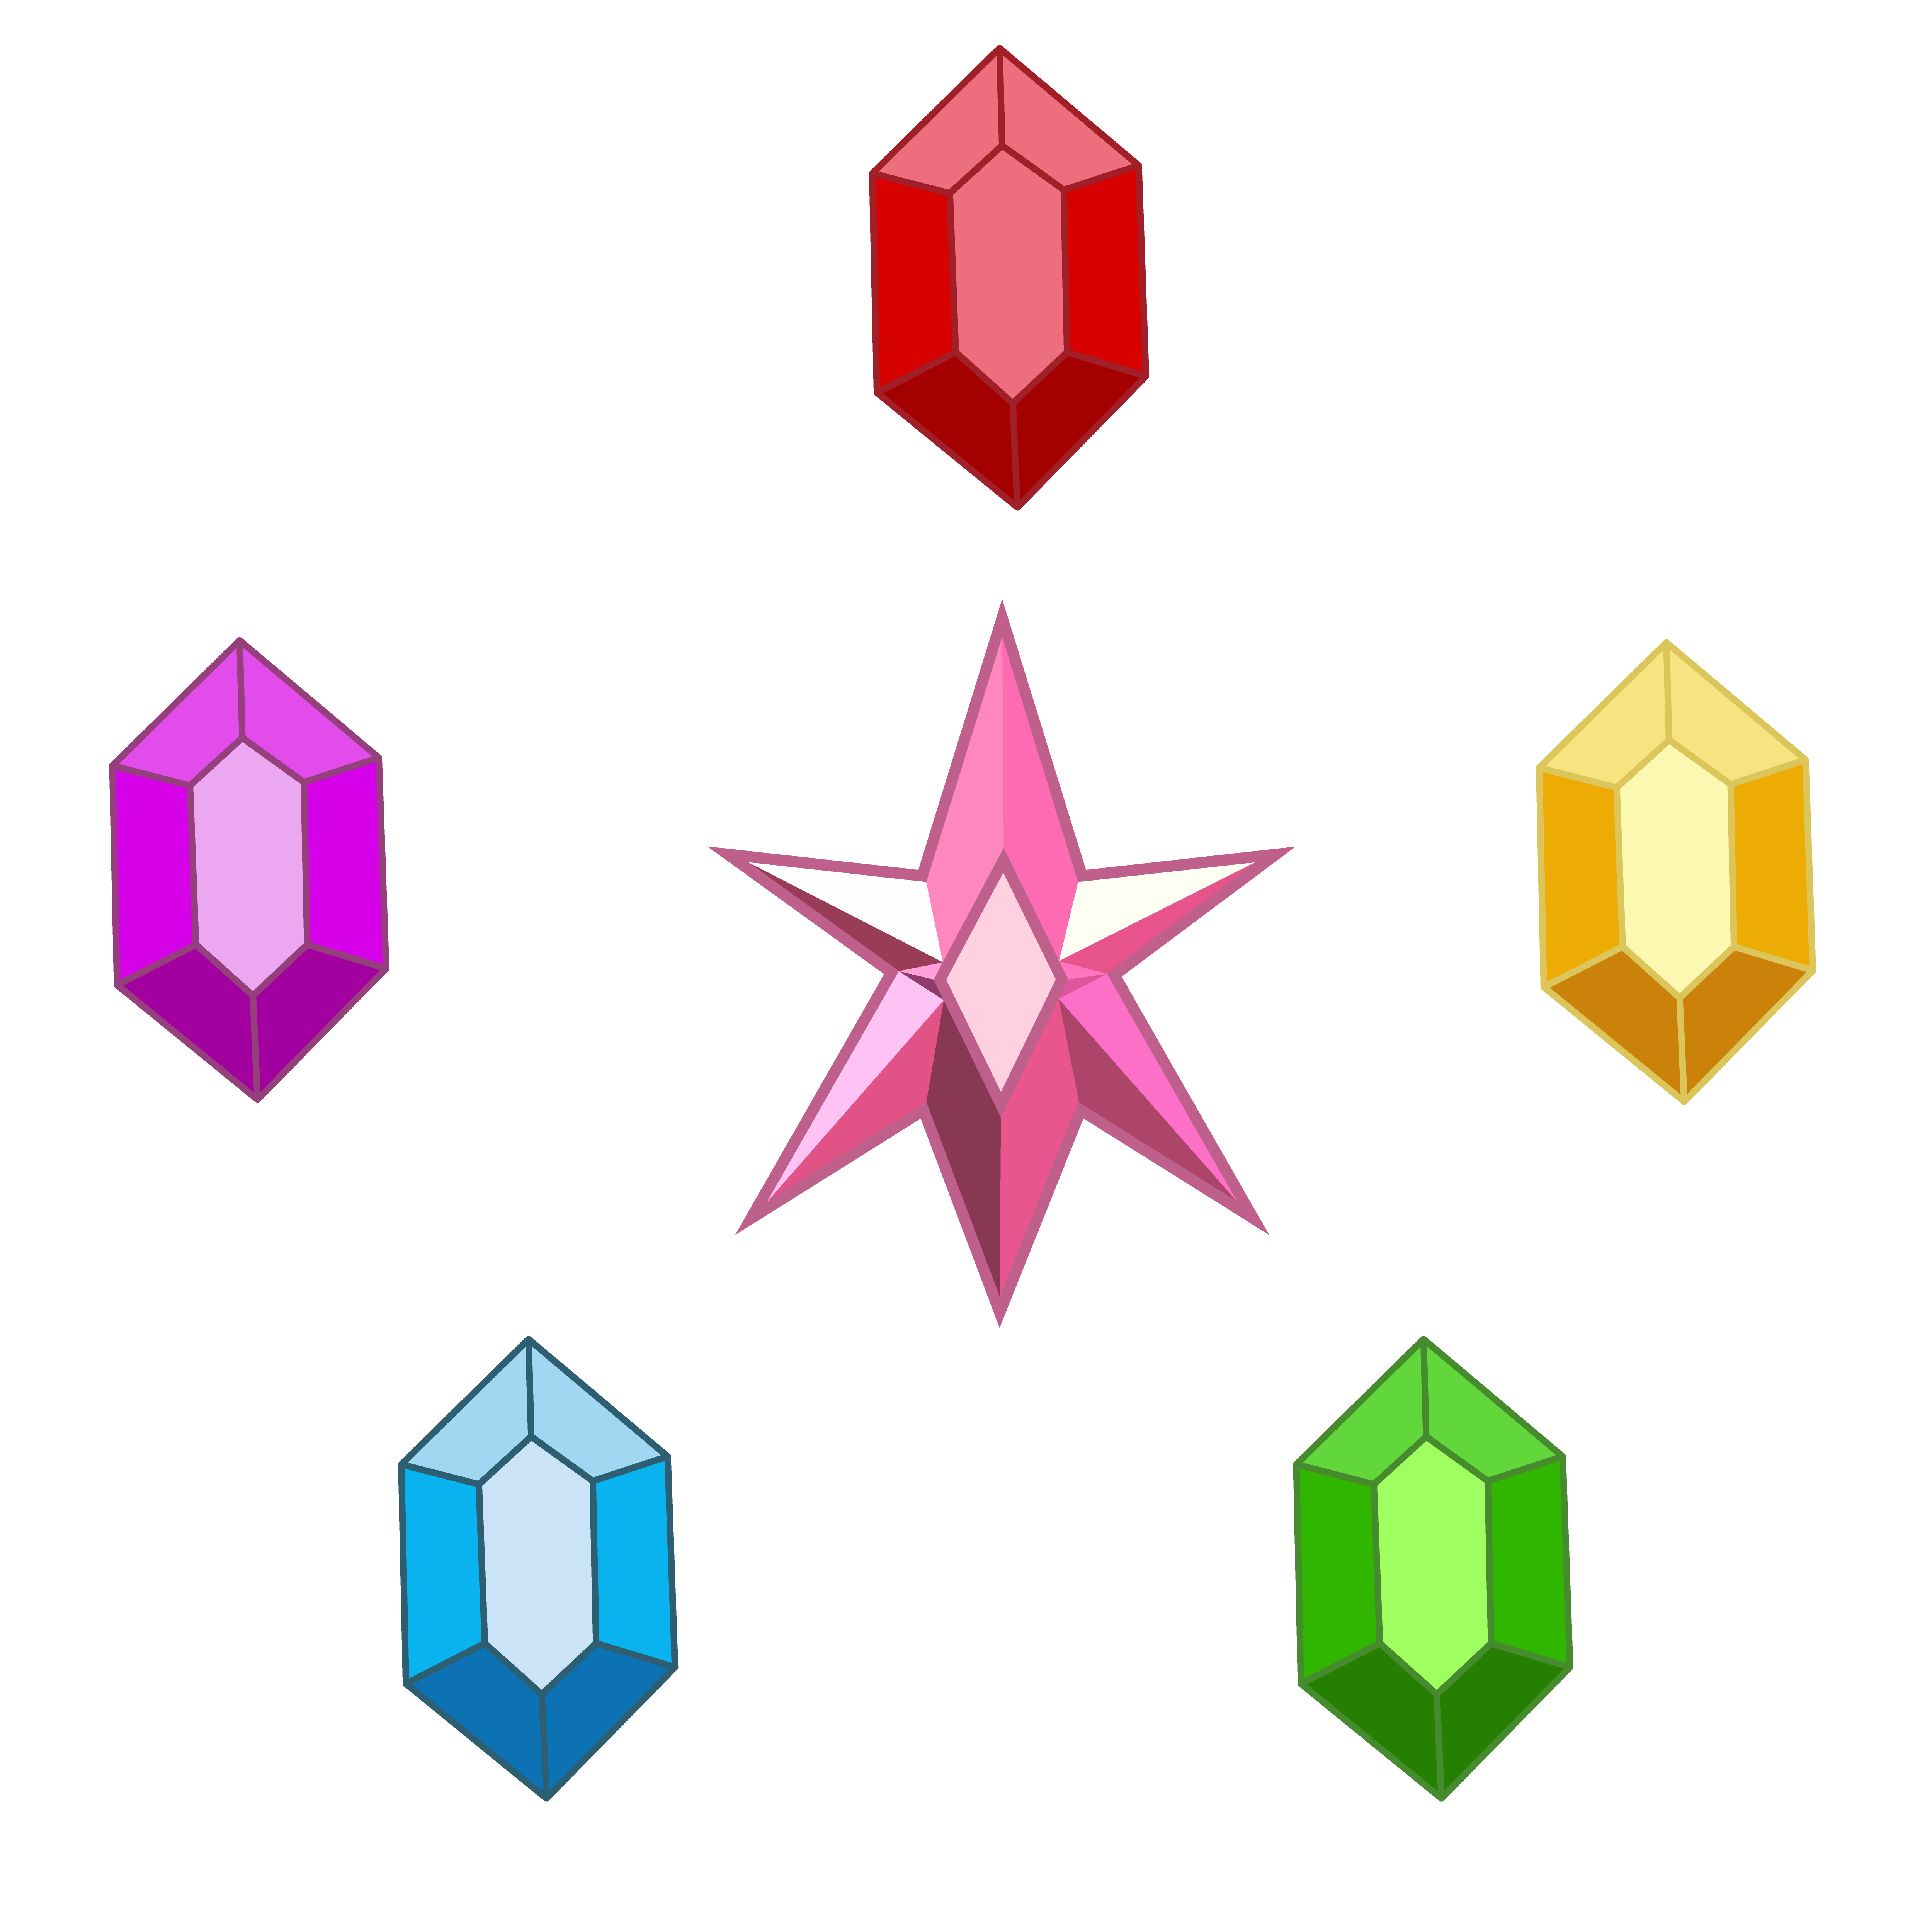 Elements of harmony by. Gems vector graphic royalty free